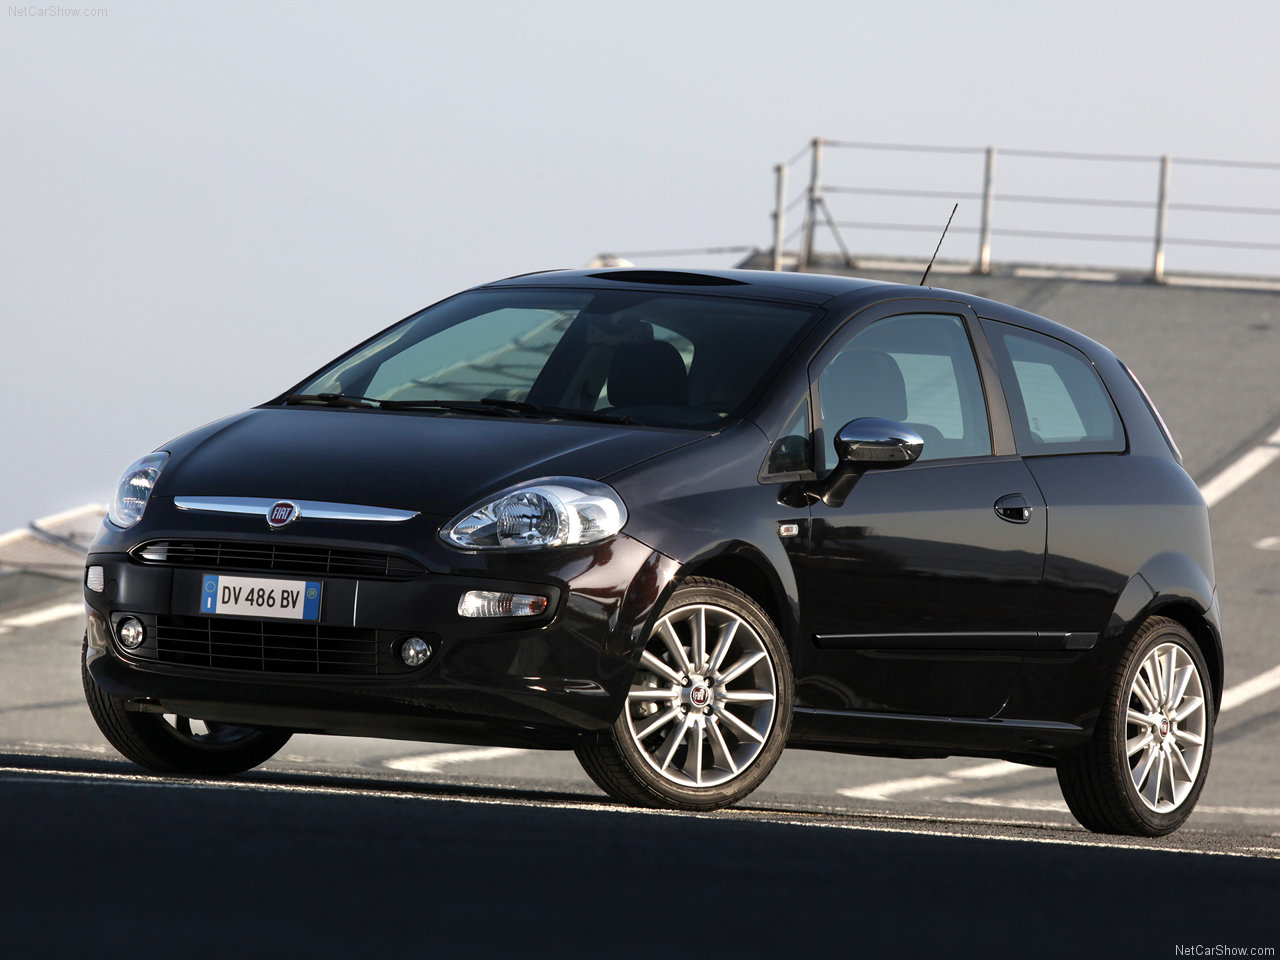 2010 fiat punto evo. Black Bedroom Furniture Sets. Home Design Ideas